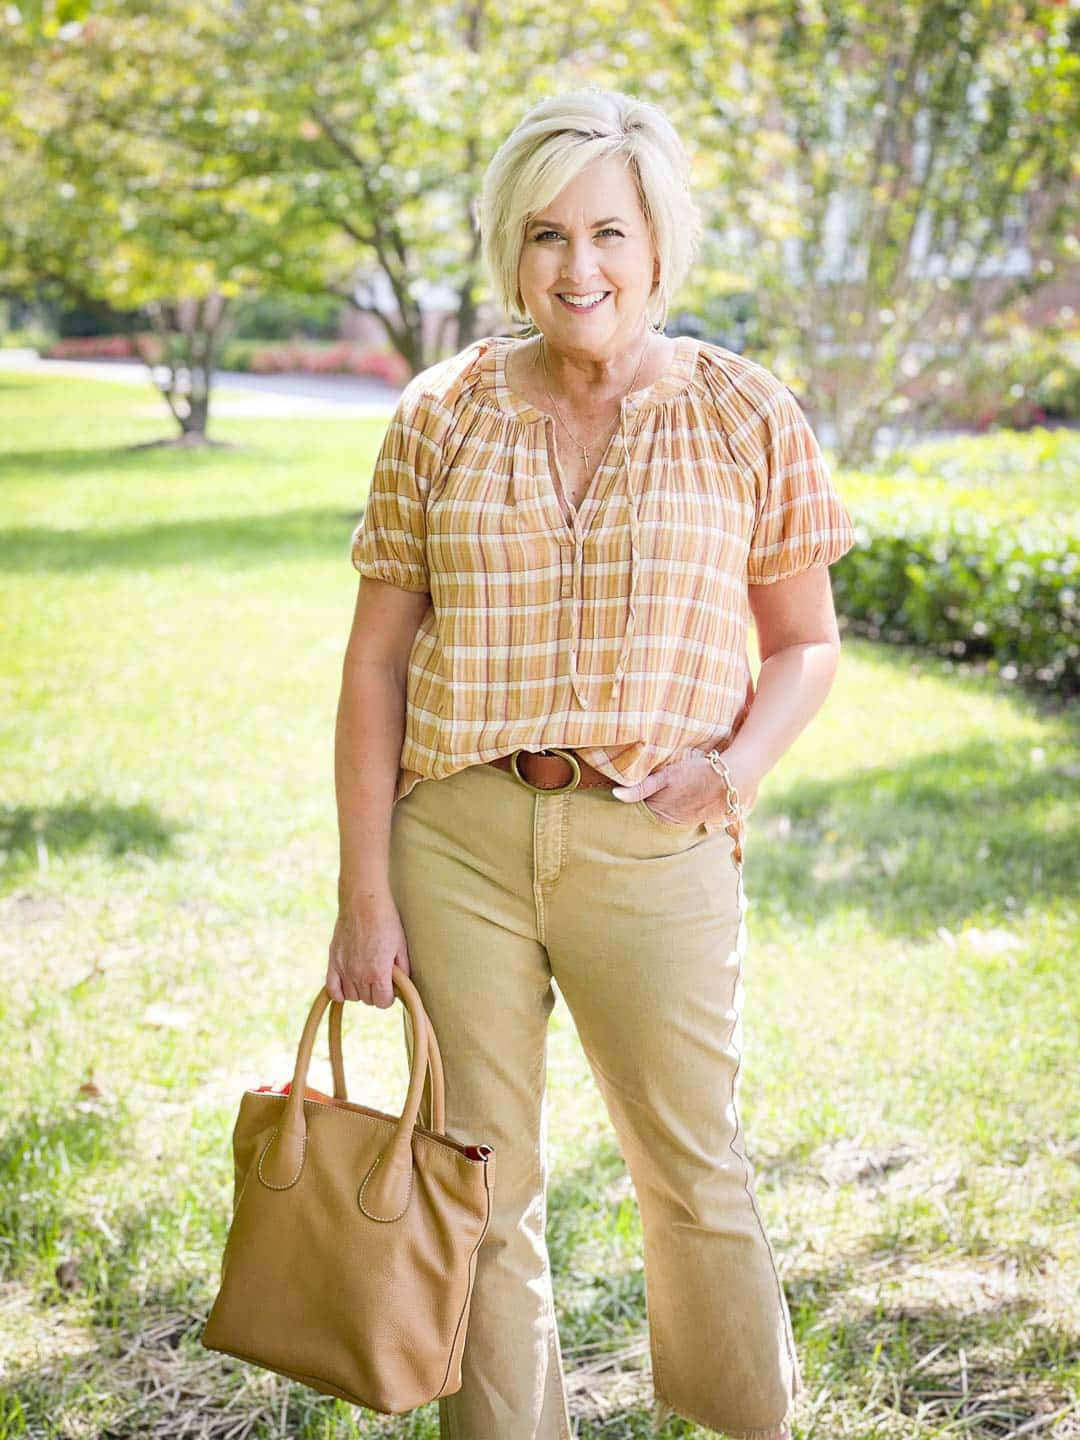 Over 40 Fashion Blogger, Tania Stephens, looks casual in her fall festive plaid top